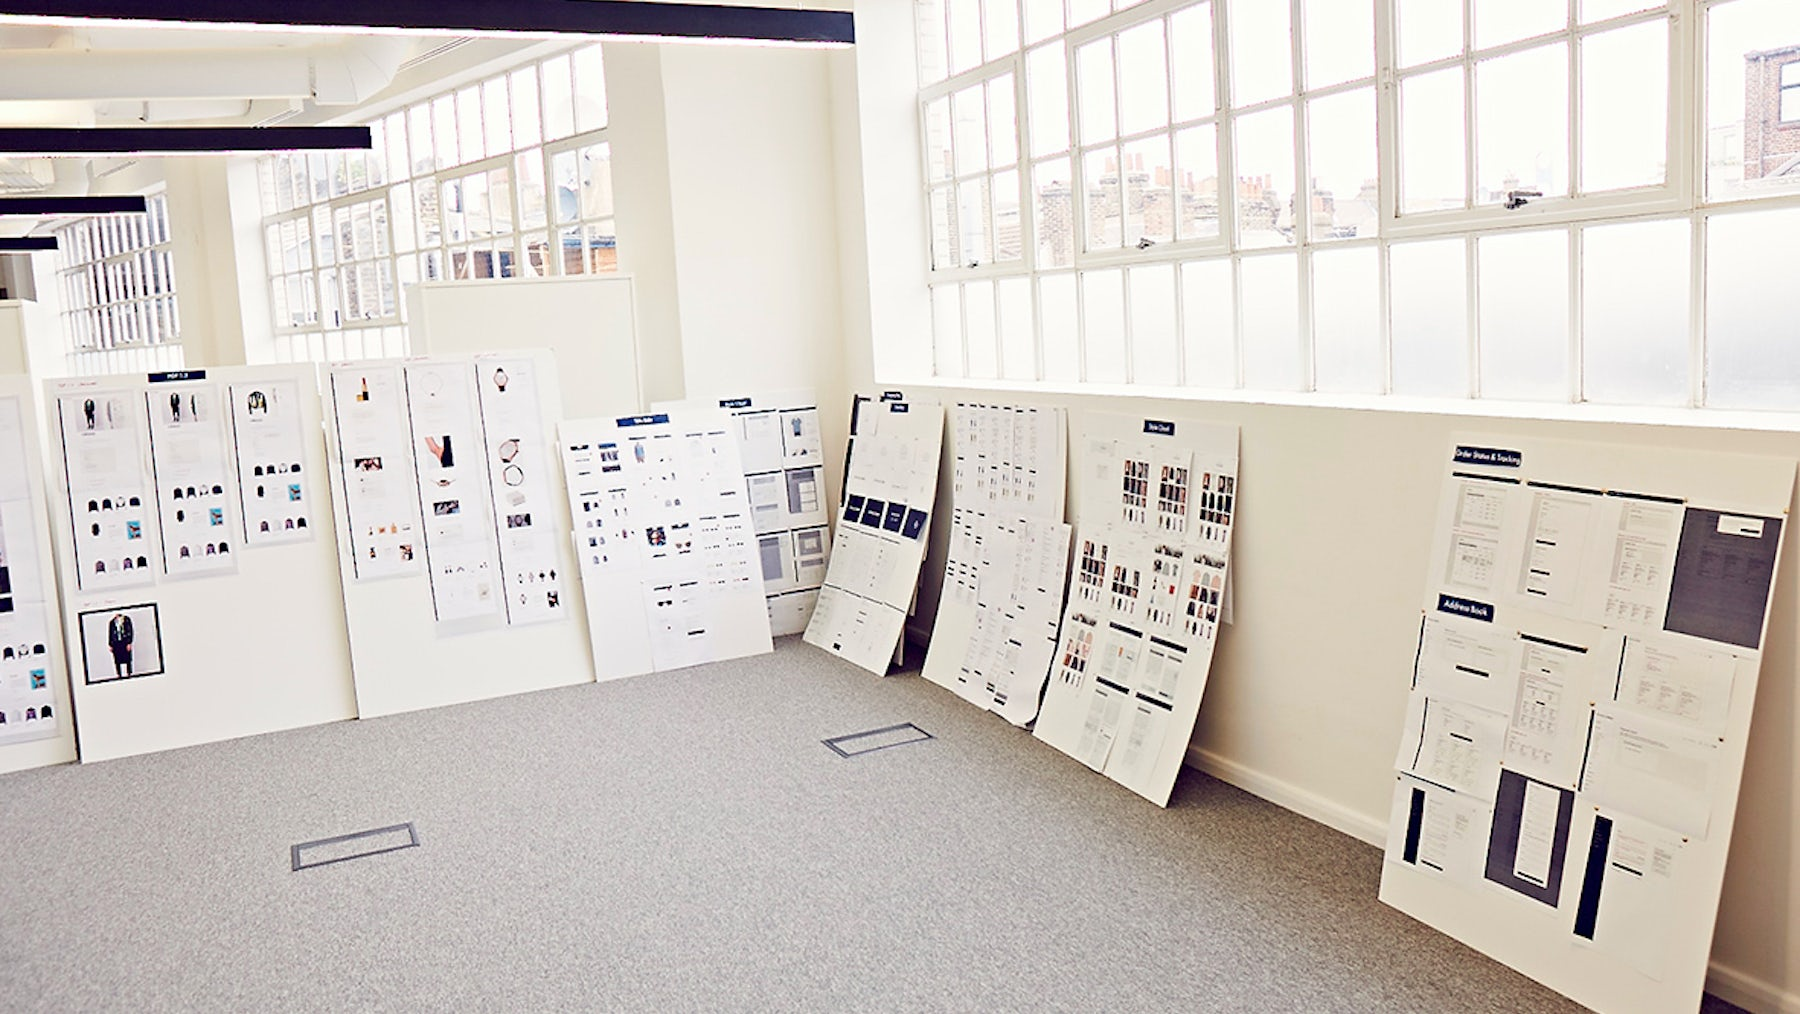 Inside Style.com's open-plan offices in the Camden neighbourhood of London   Source: Courtesy